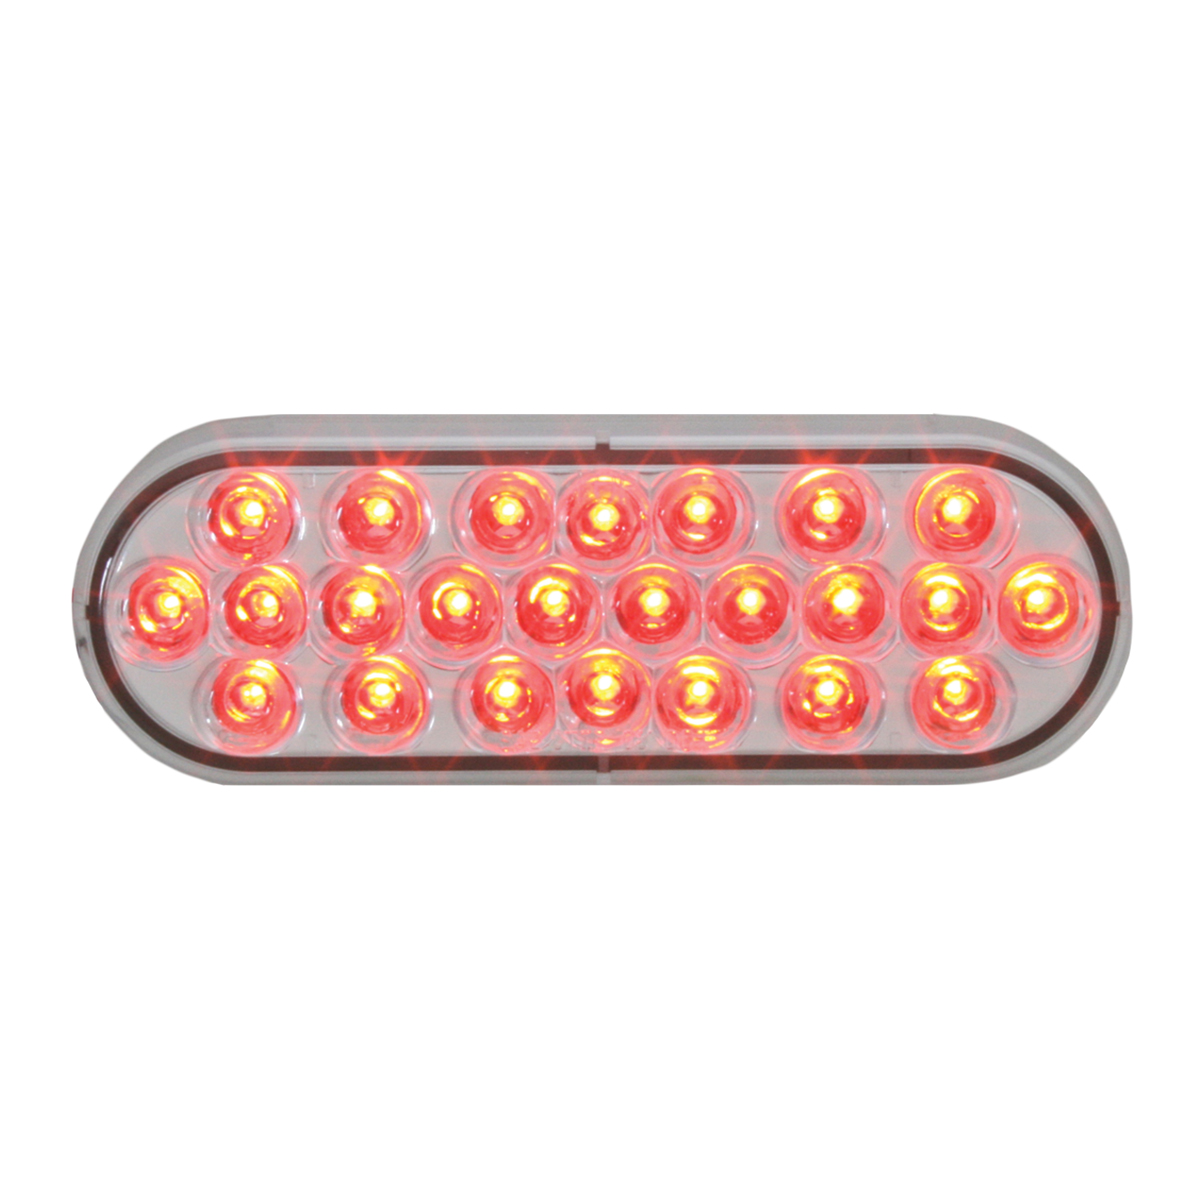 #78234 - Oval Pearl LED Flat Red/Clear Light - Slanted